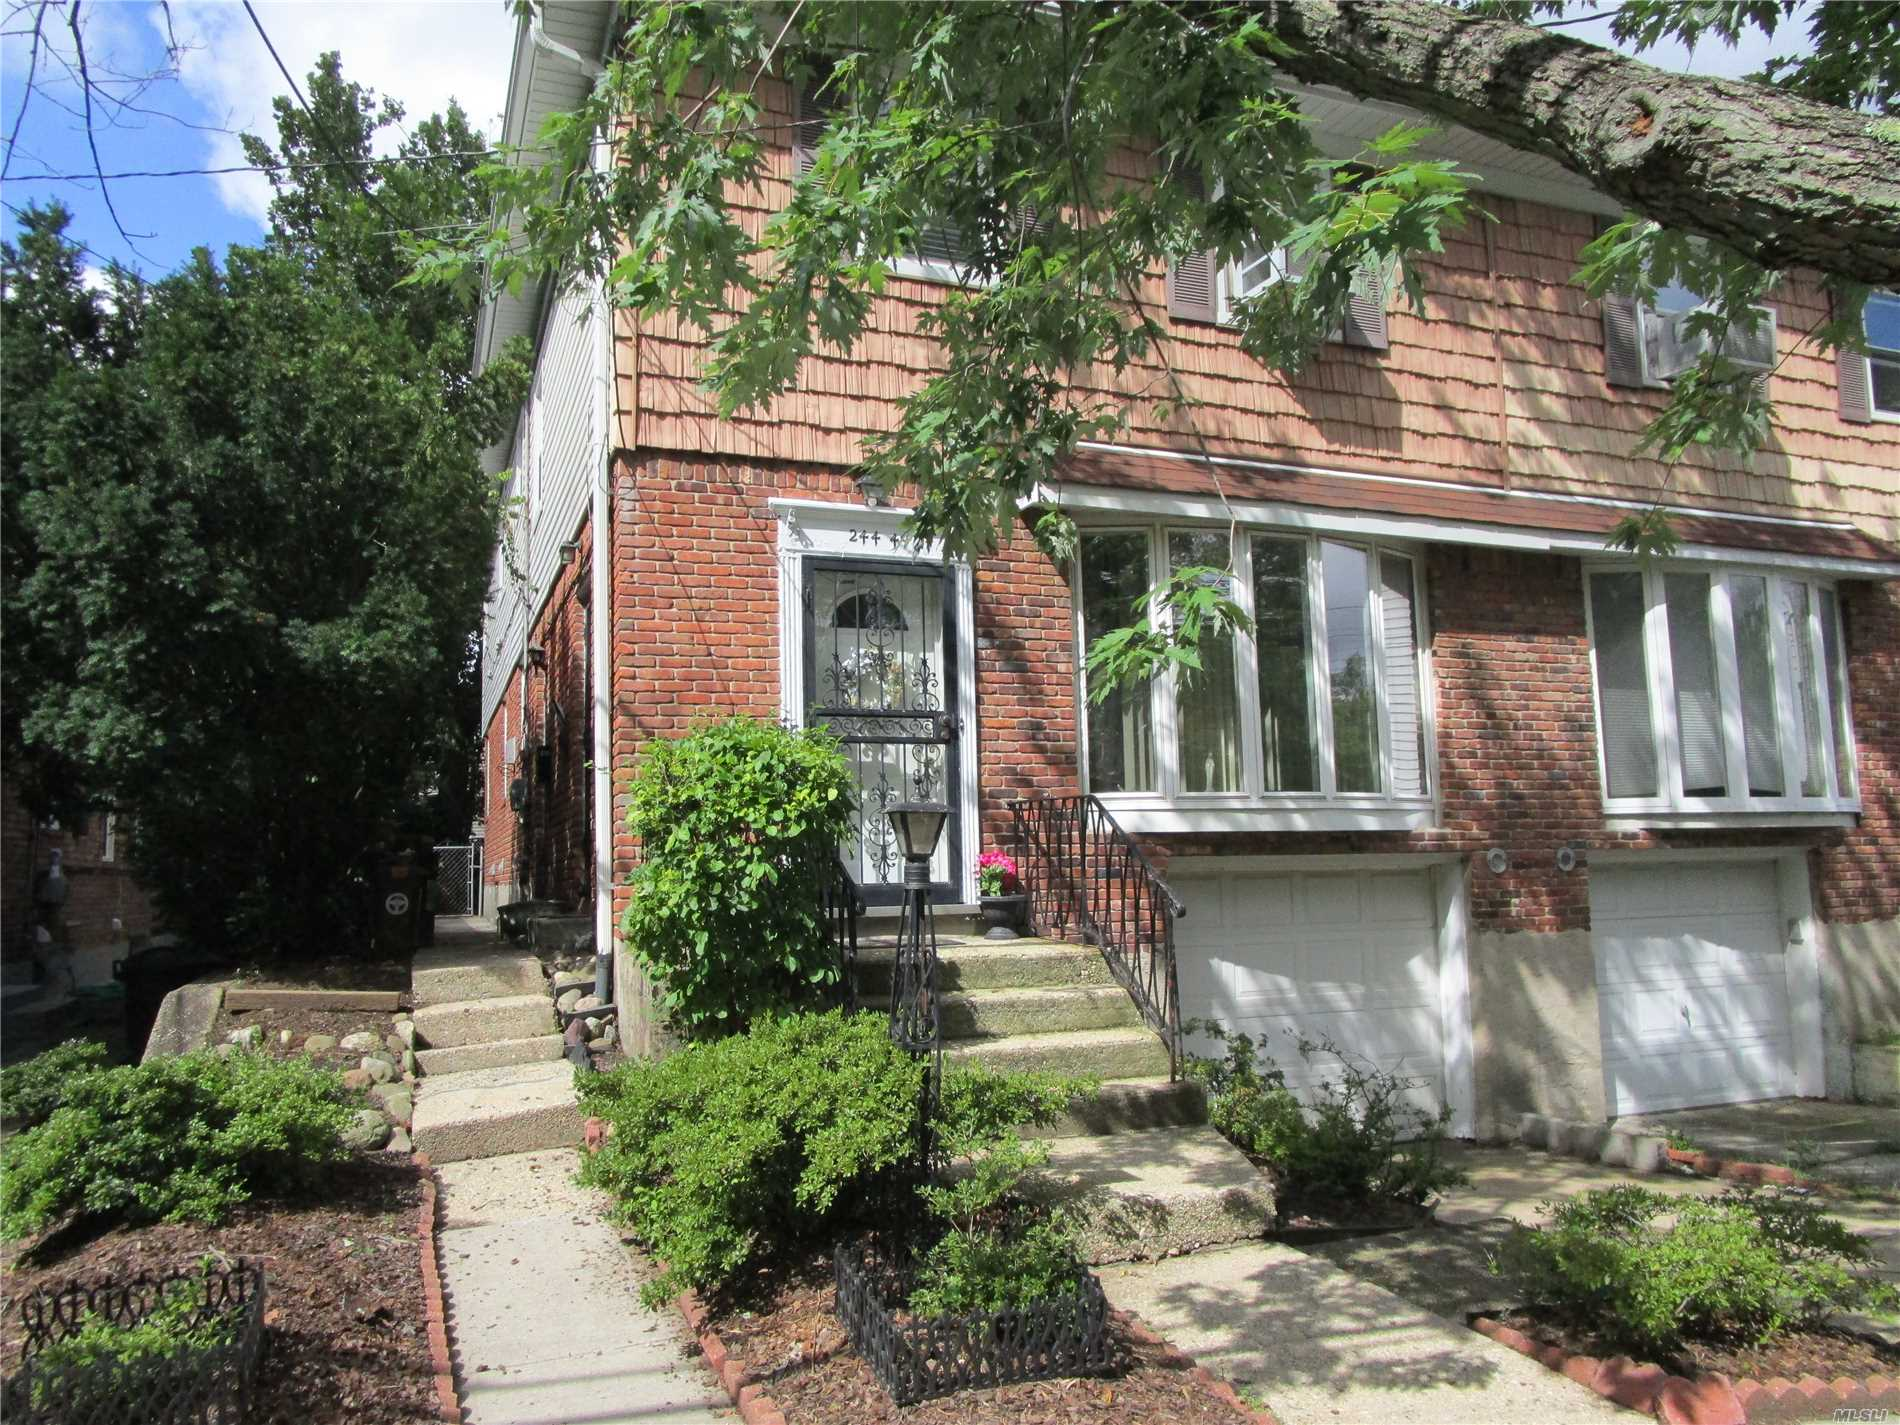 Three Bedroom, 2 Bath, 2nd Fl Of A 2 Family House.All Utilities Paid By Tenant. Street Parking